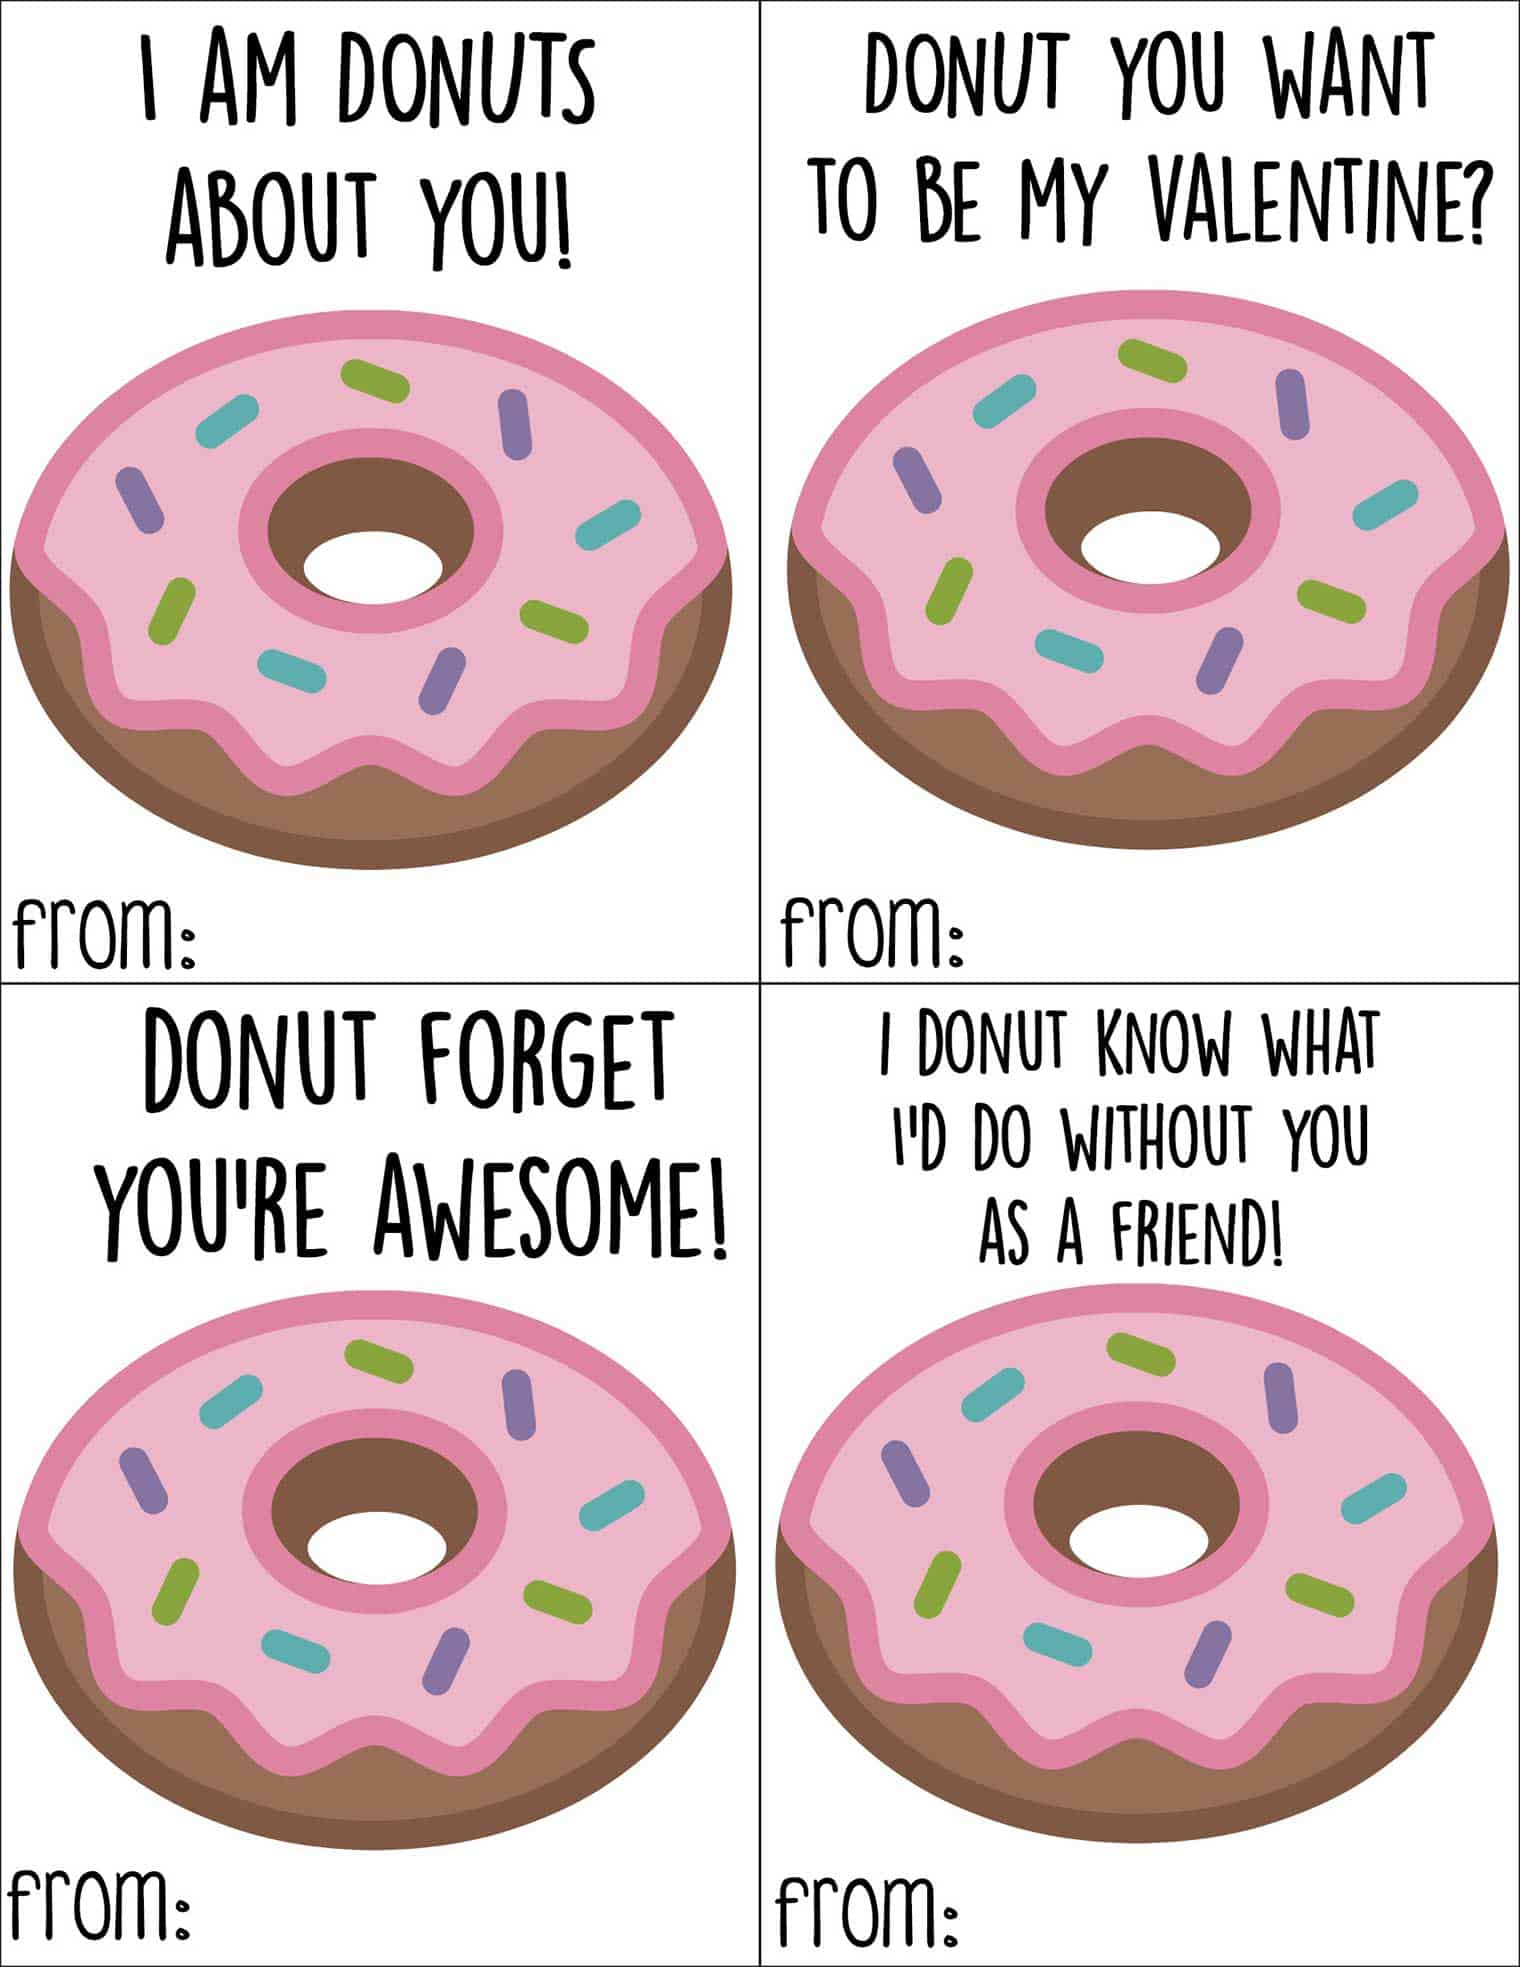 Free printable donut Valentine's Day cards